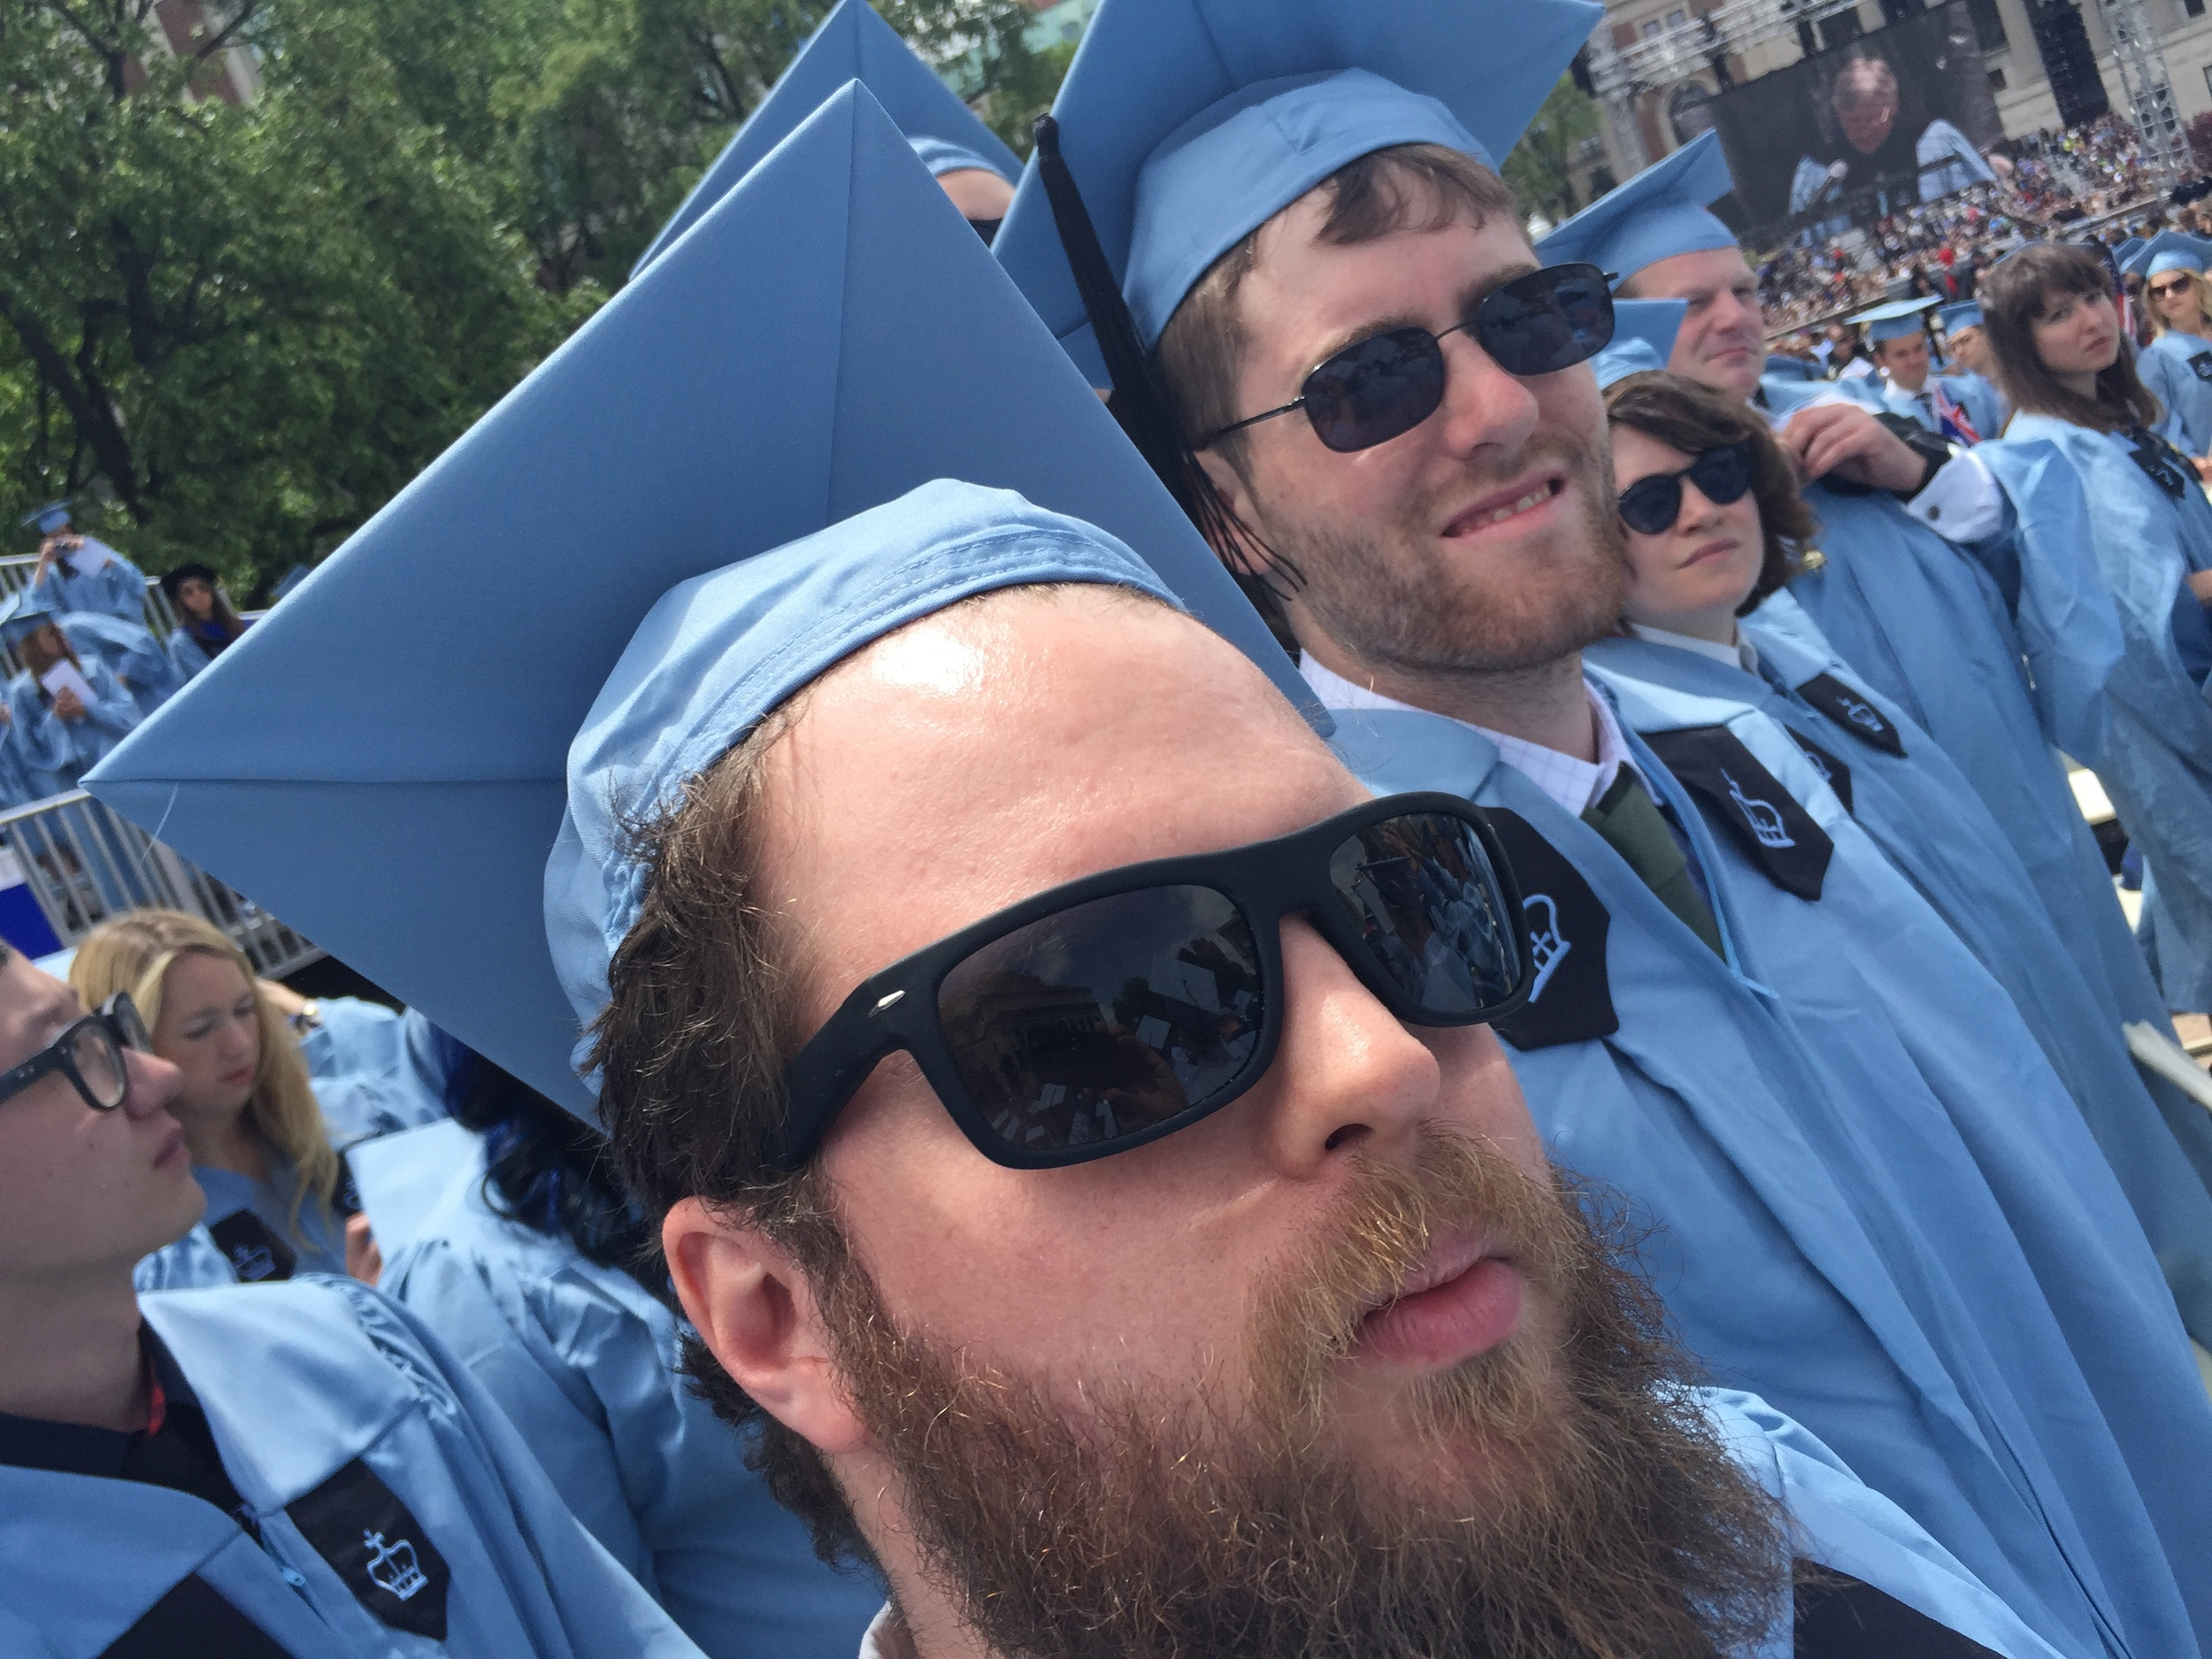 May 20th, 2015:  Director Ben Leonberg (right) and me (beard) graduate from Columbia University film school. ONWARD!